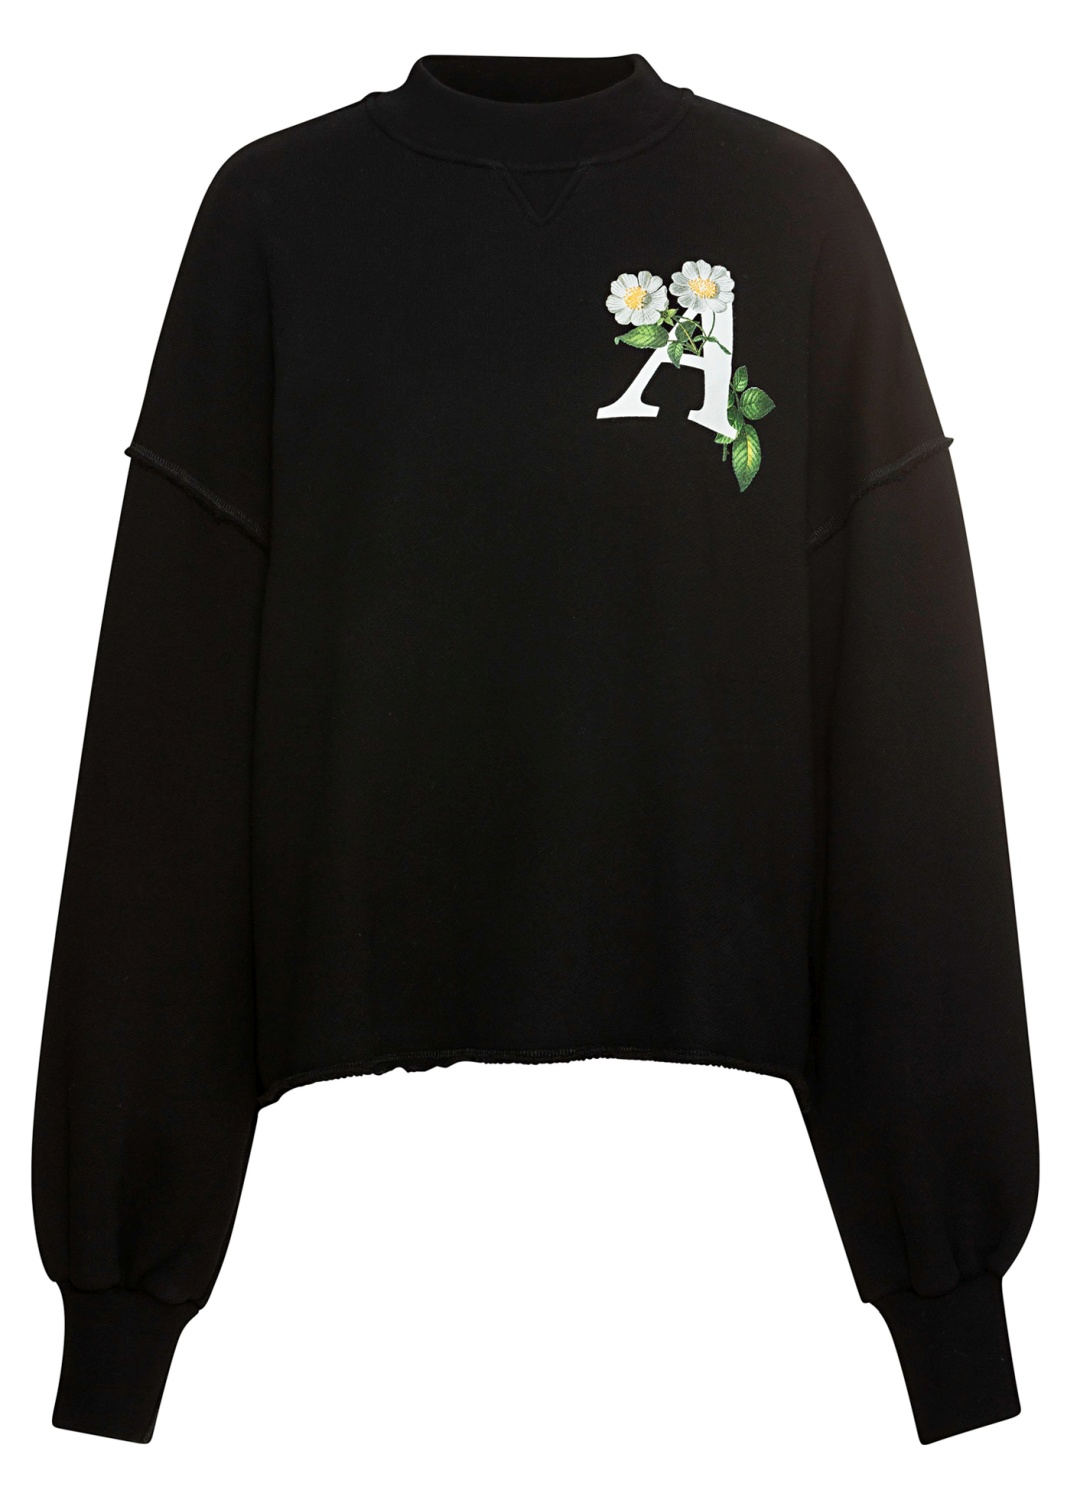 DAISY LOGO COMFY CREW image number 0